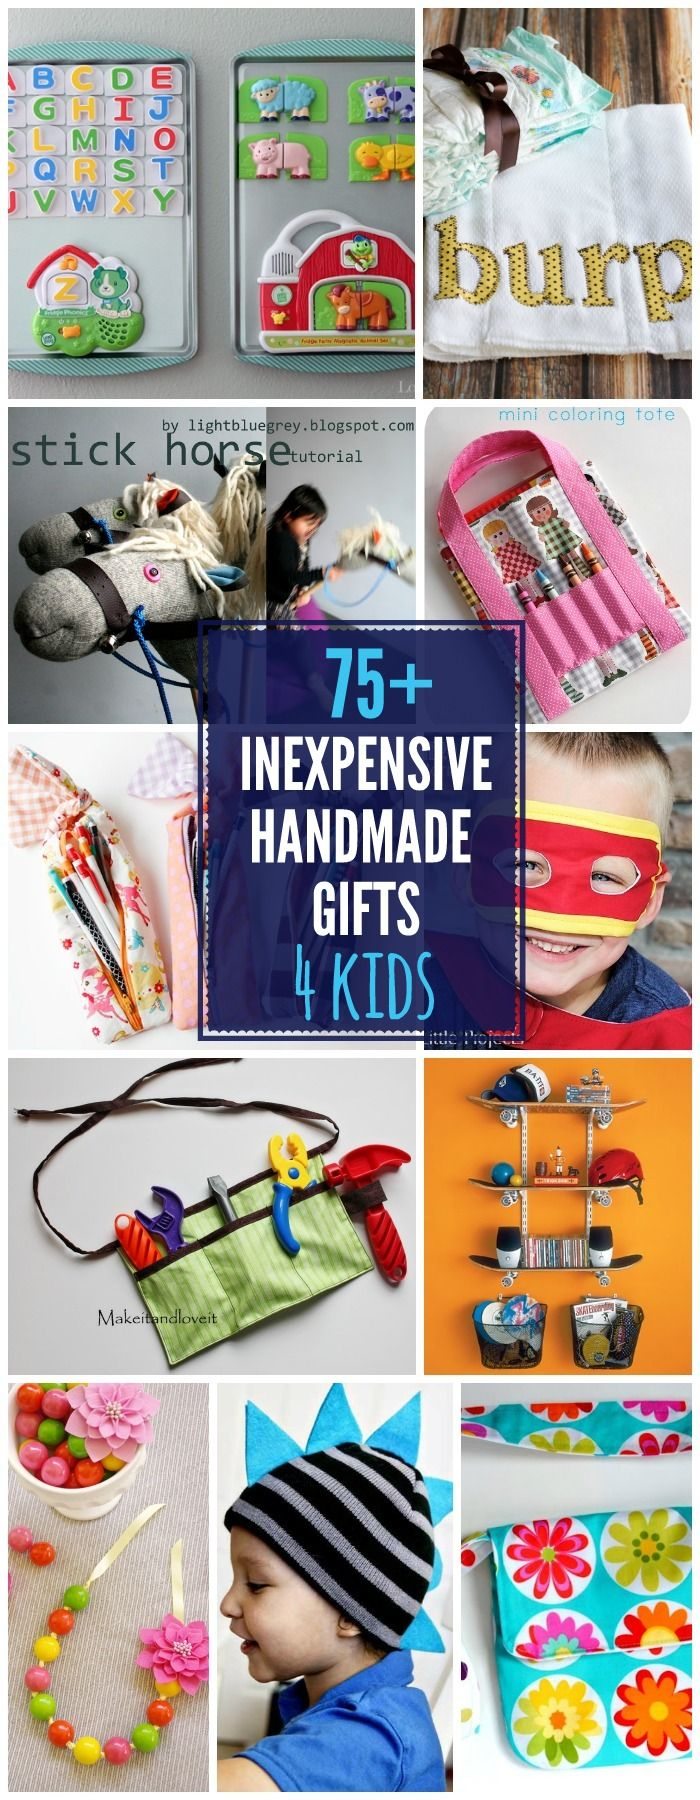 75+ INEXPENSIVE Handmade Gifts for Kids - so many great tutorials for great gift ideas! { lilluna.com }